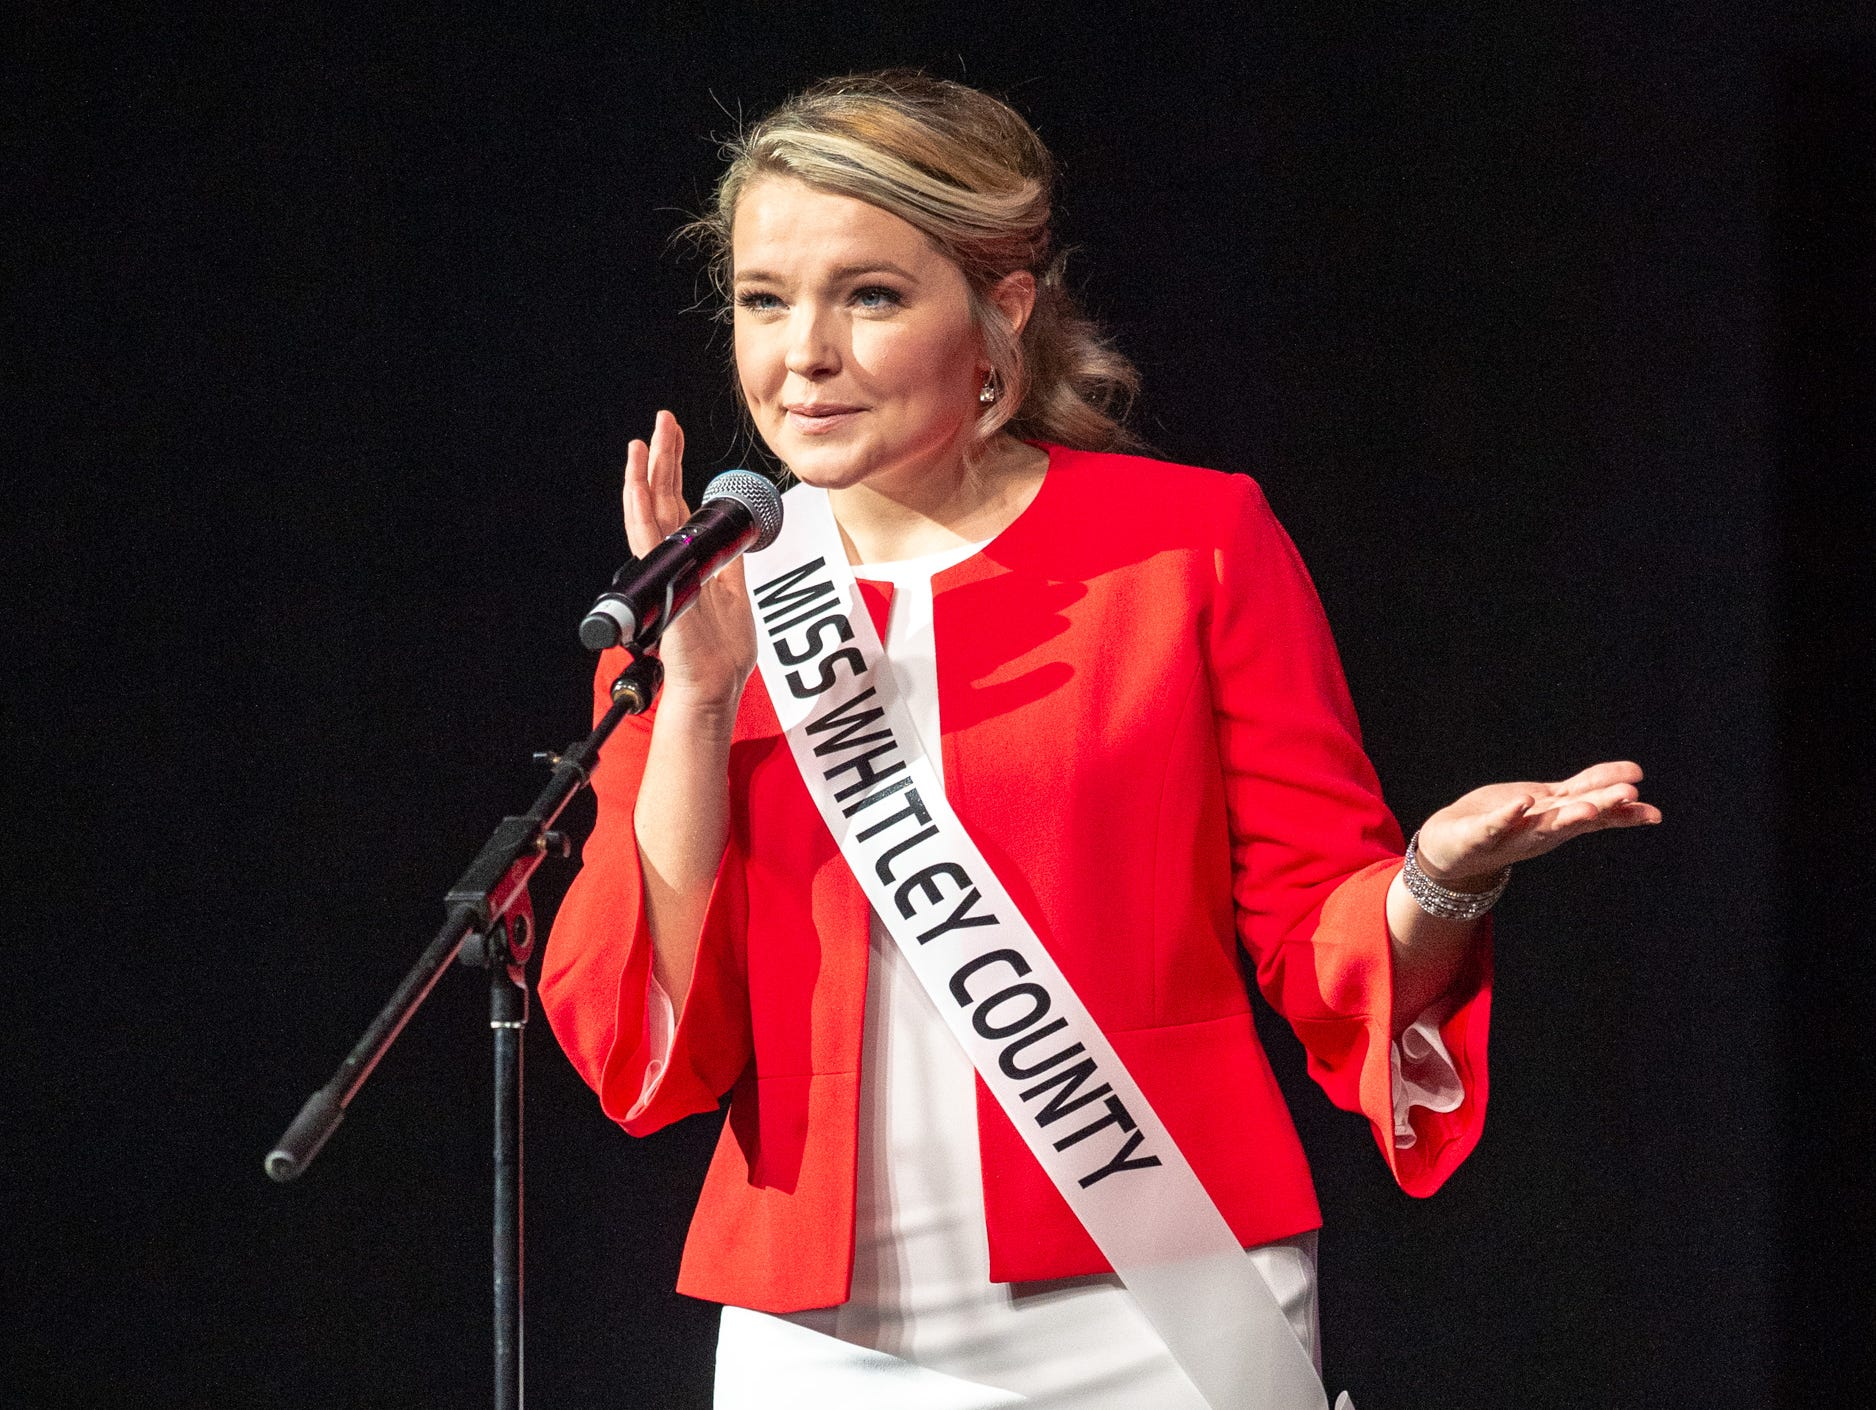 Miss Whitley County, Mackenzie Sheets, during the 61st Indiana State Fair Queen Pageant at the Indiana State Fairgrounds in Indianapolis on Sunday, Jan. 6, 2019.